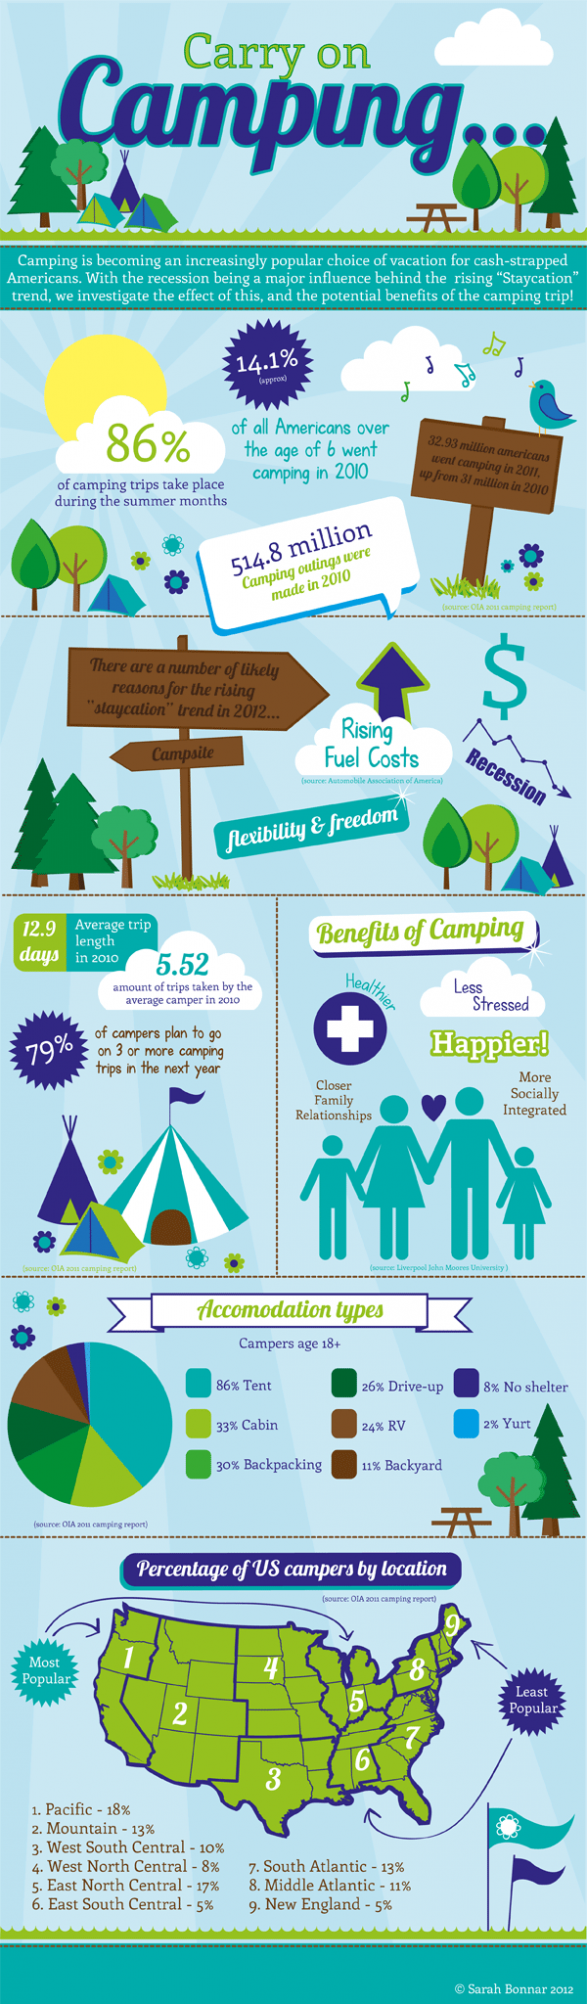 Carry On Camping: The future of camping in the US looks bright.